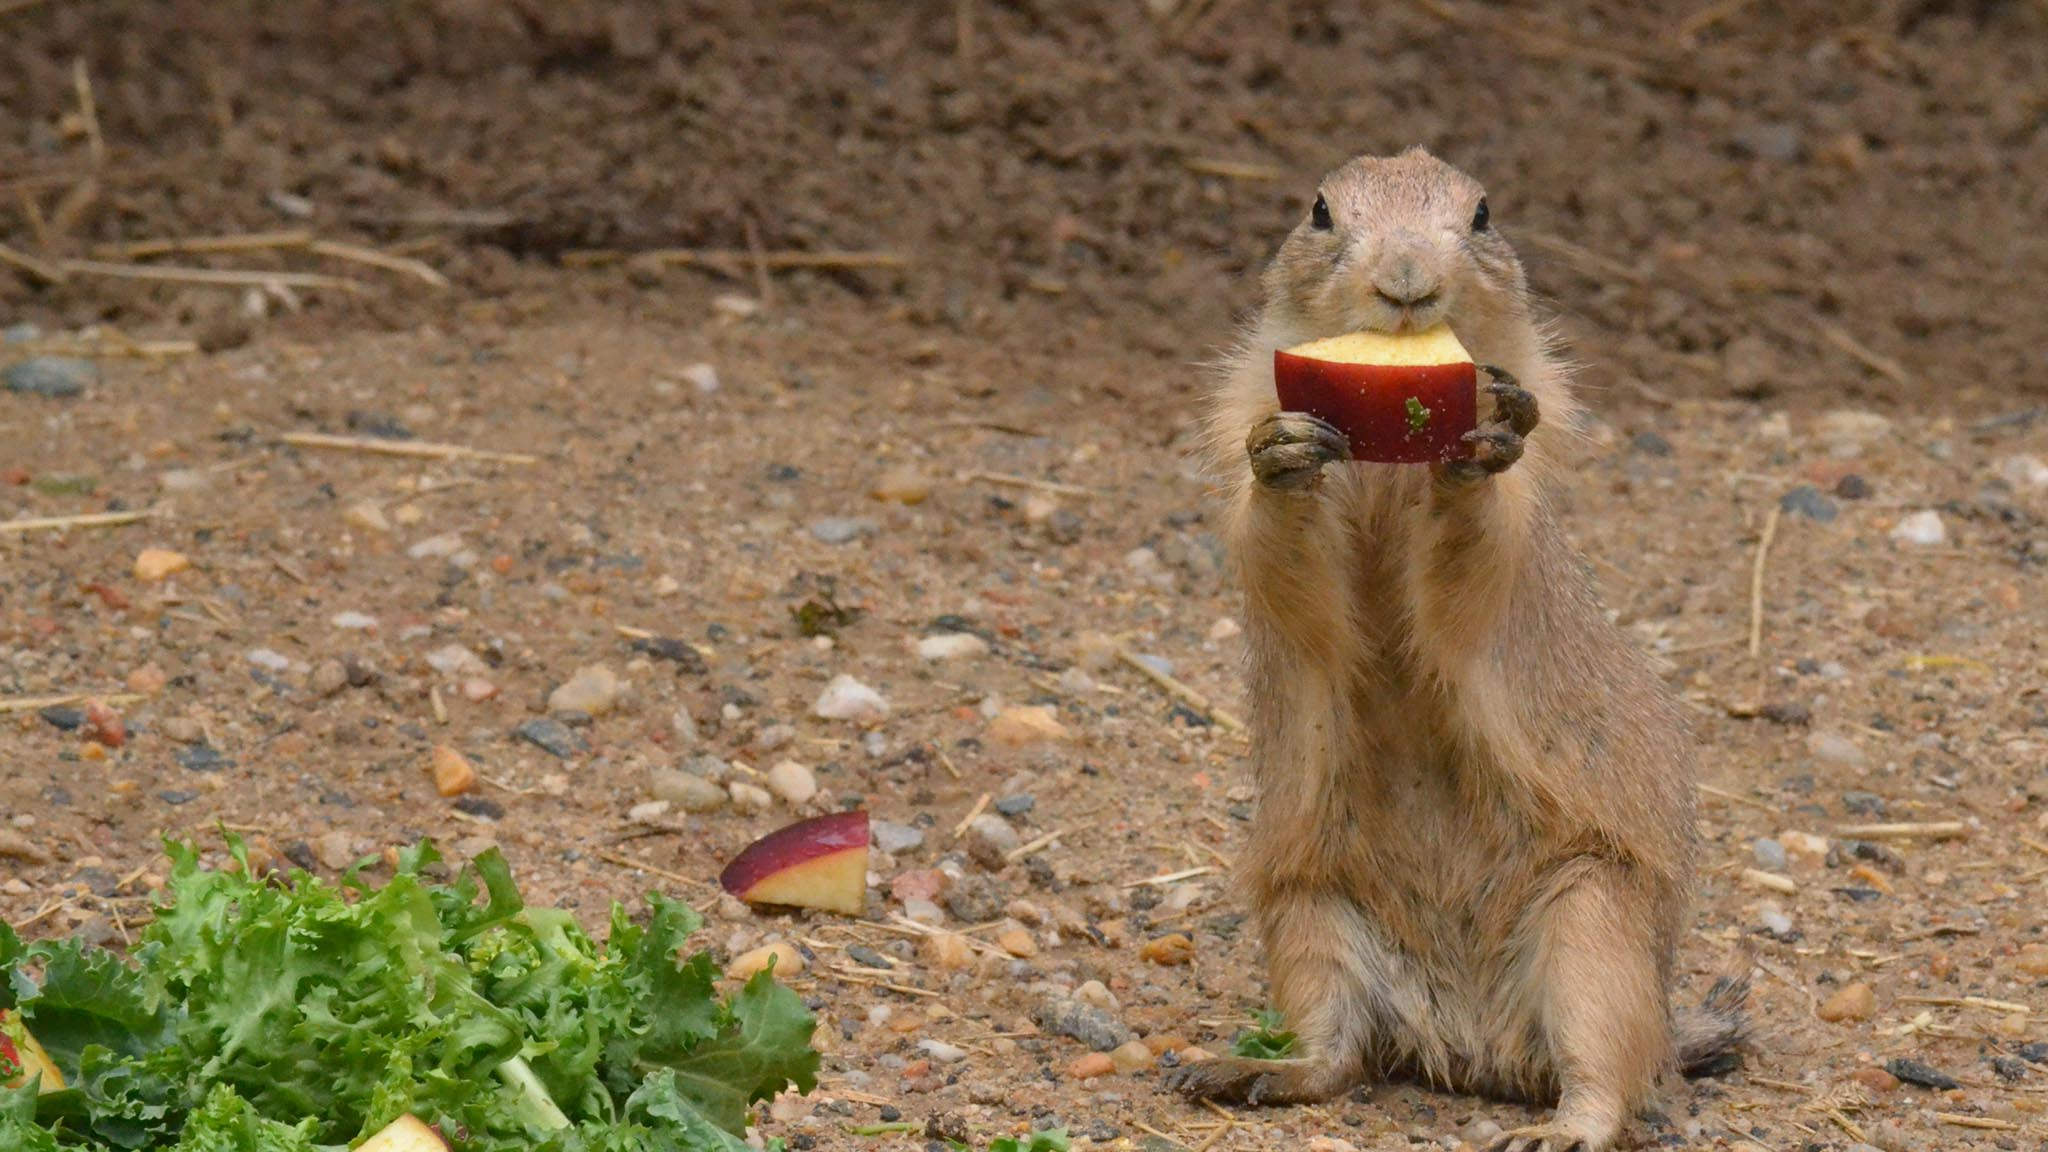 Prairie dog eating an apple.